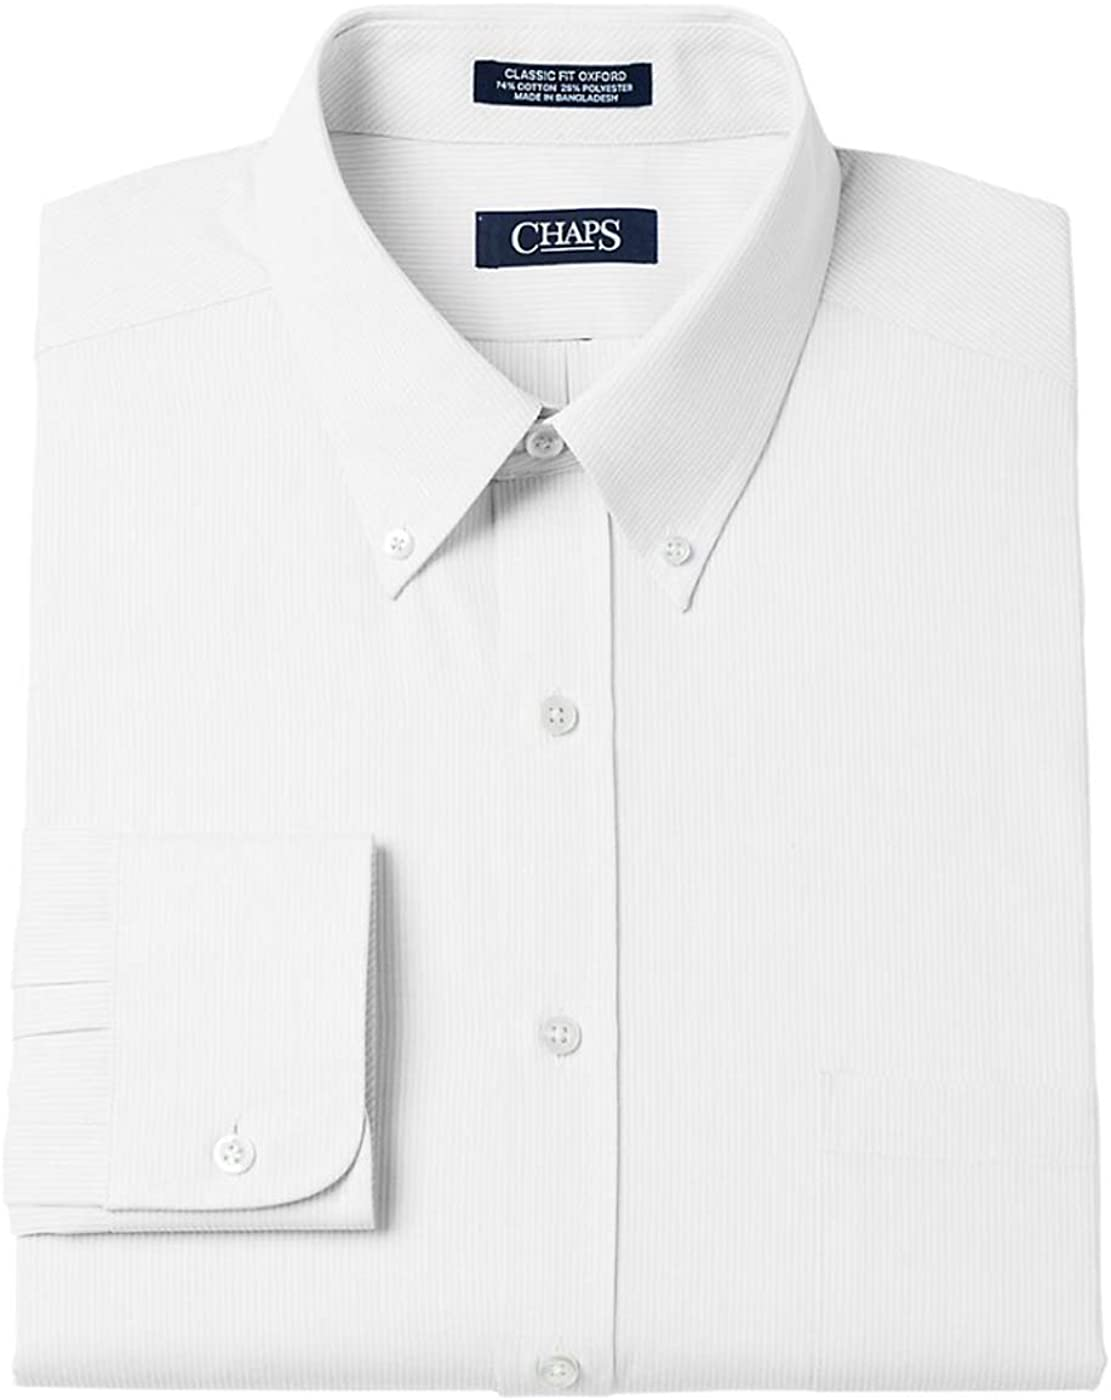 Chaps Men's Classic-Fit Long Sleeve Solid Dress Shirt, White